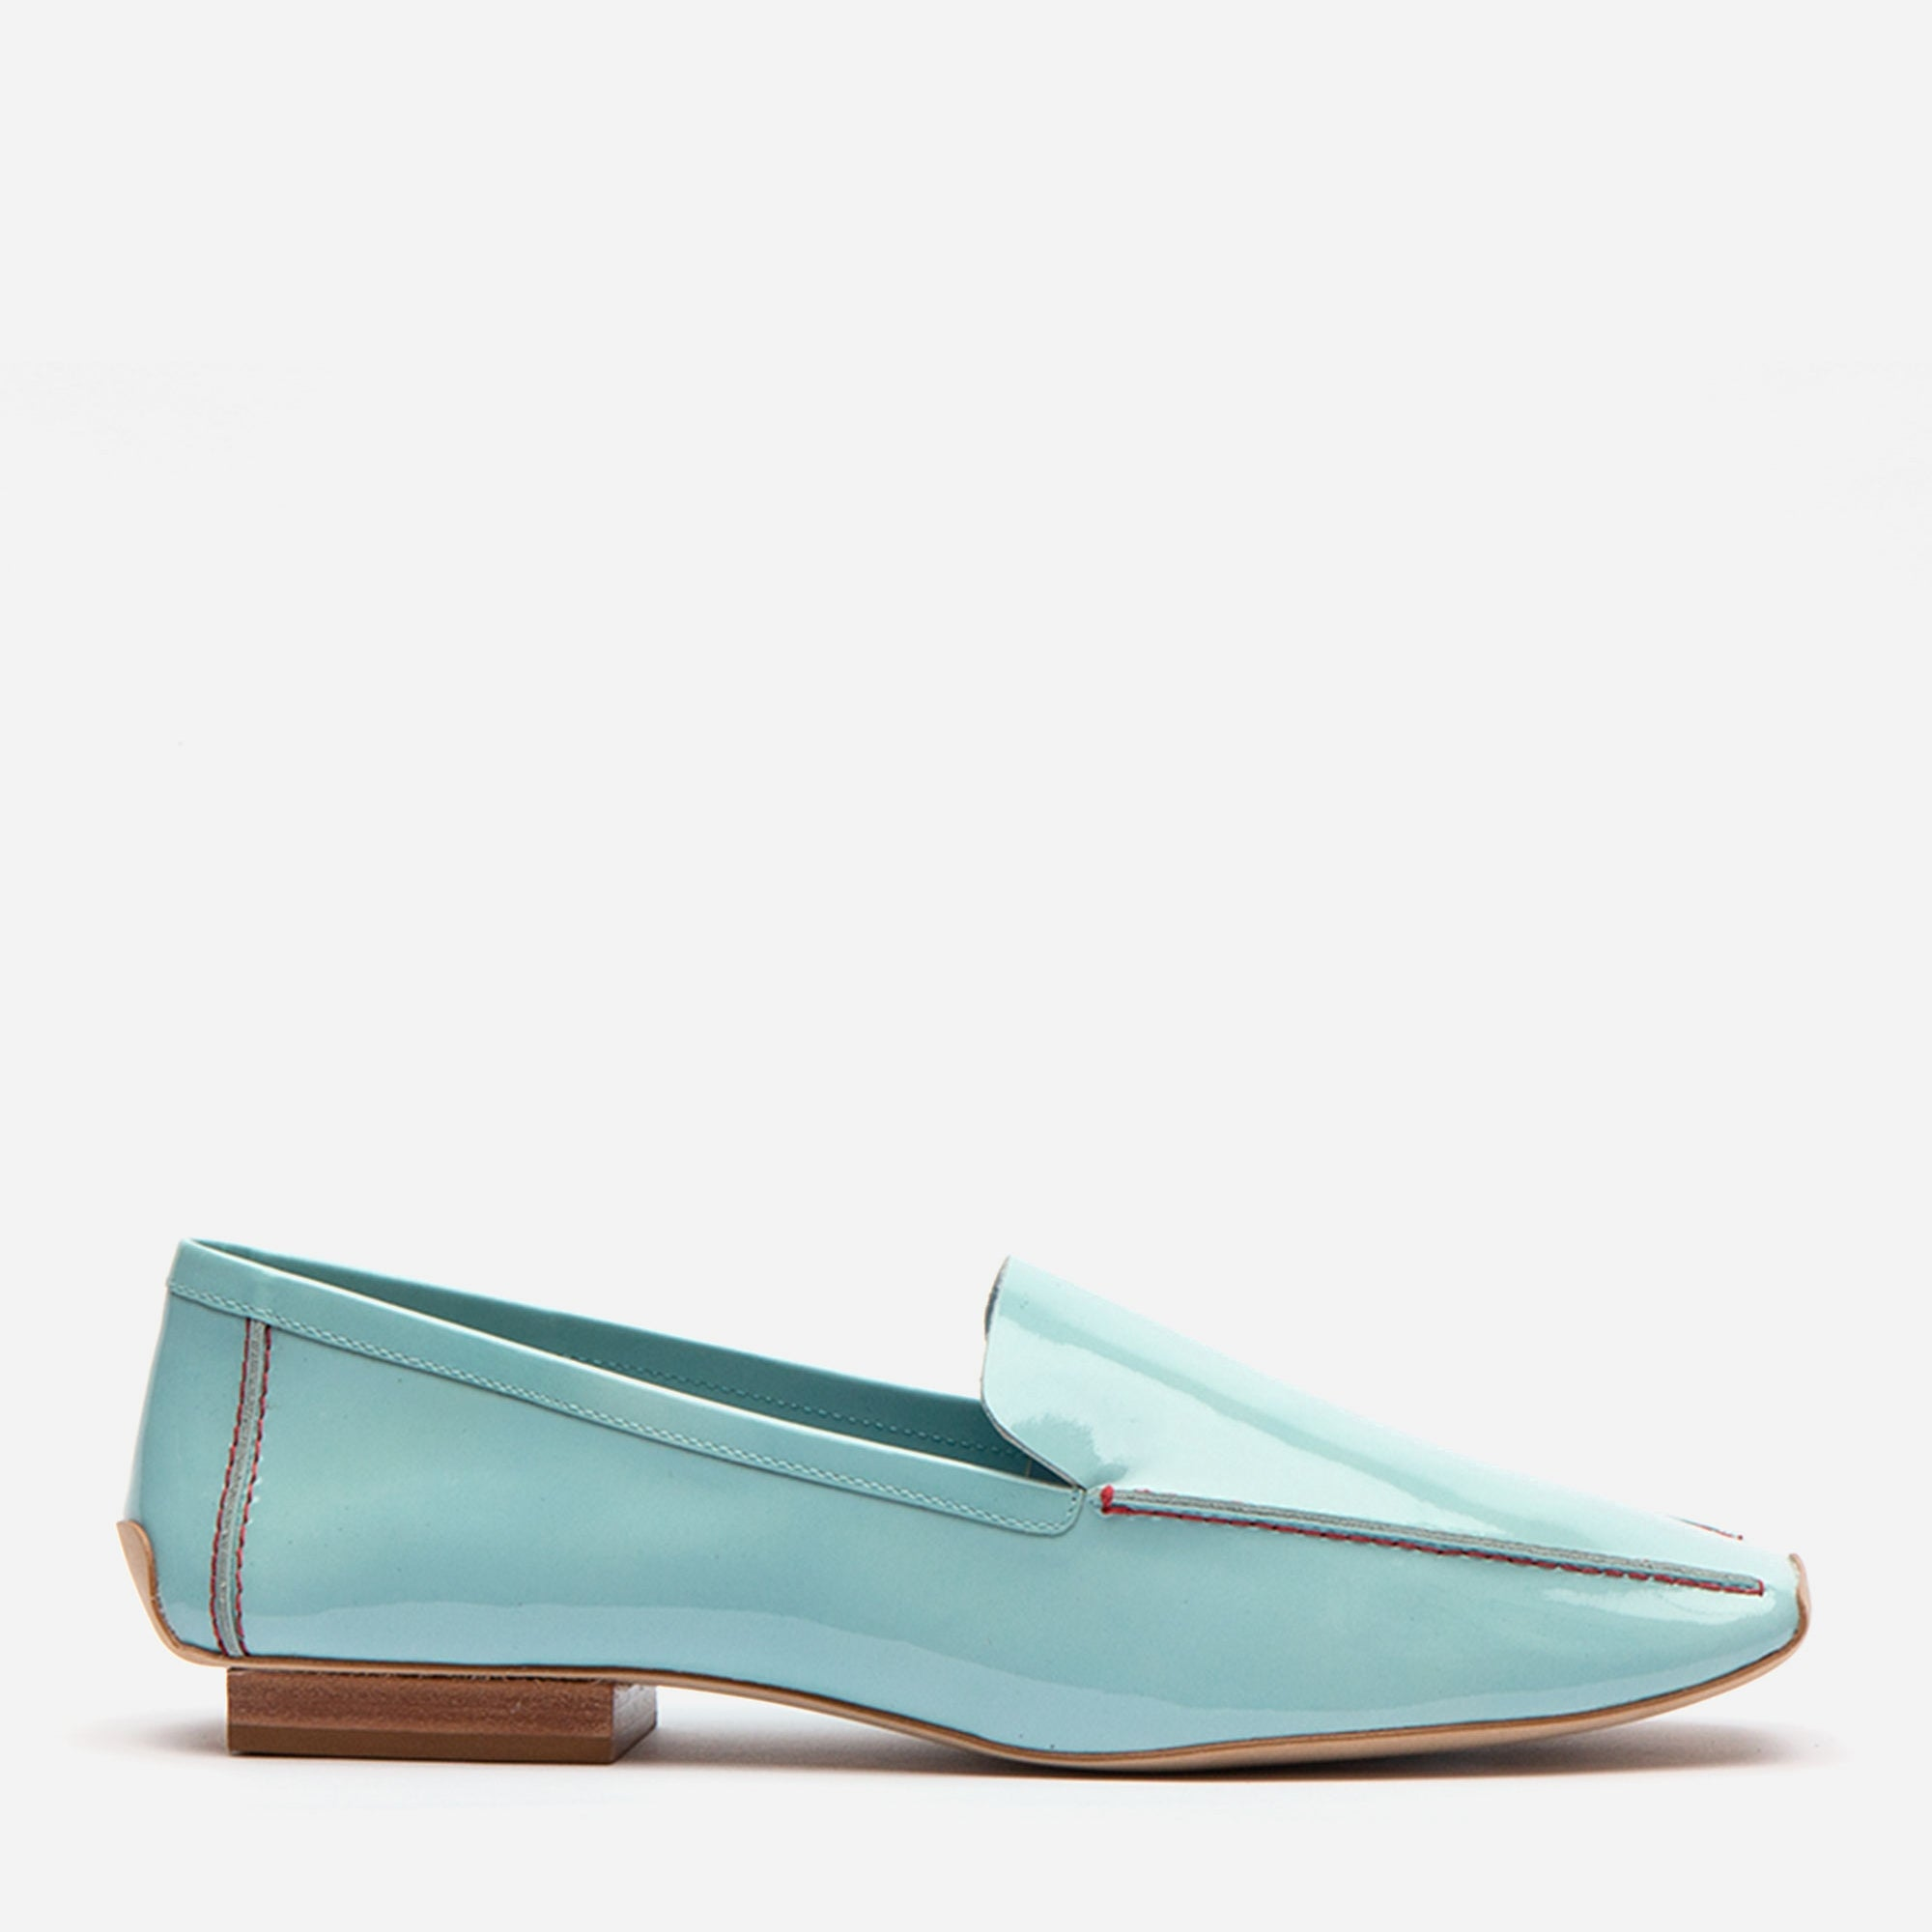 Elyce Loafers Soft Patent Light Blue